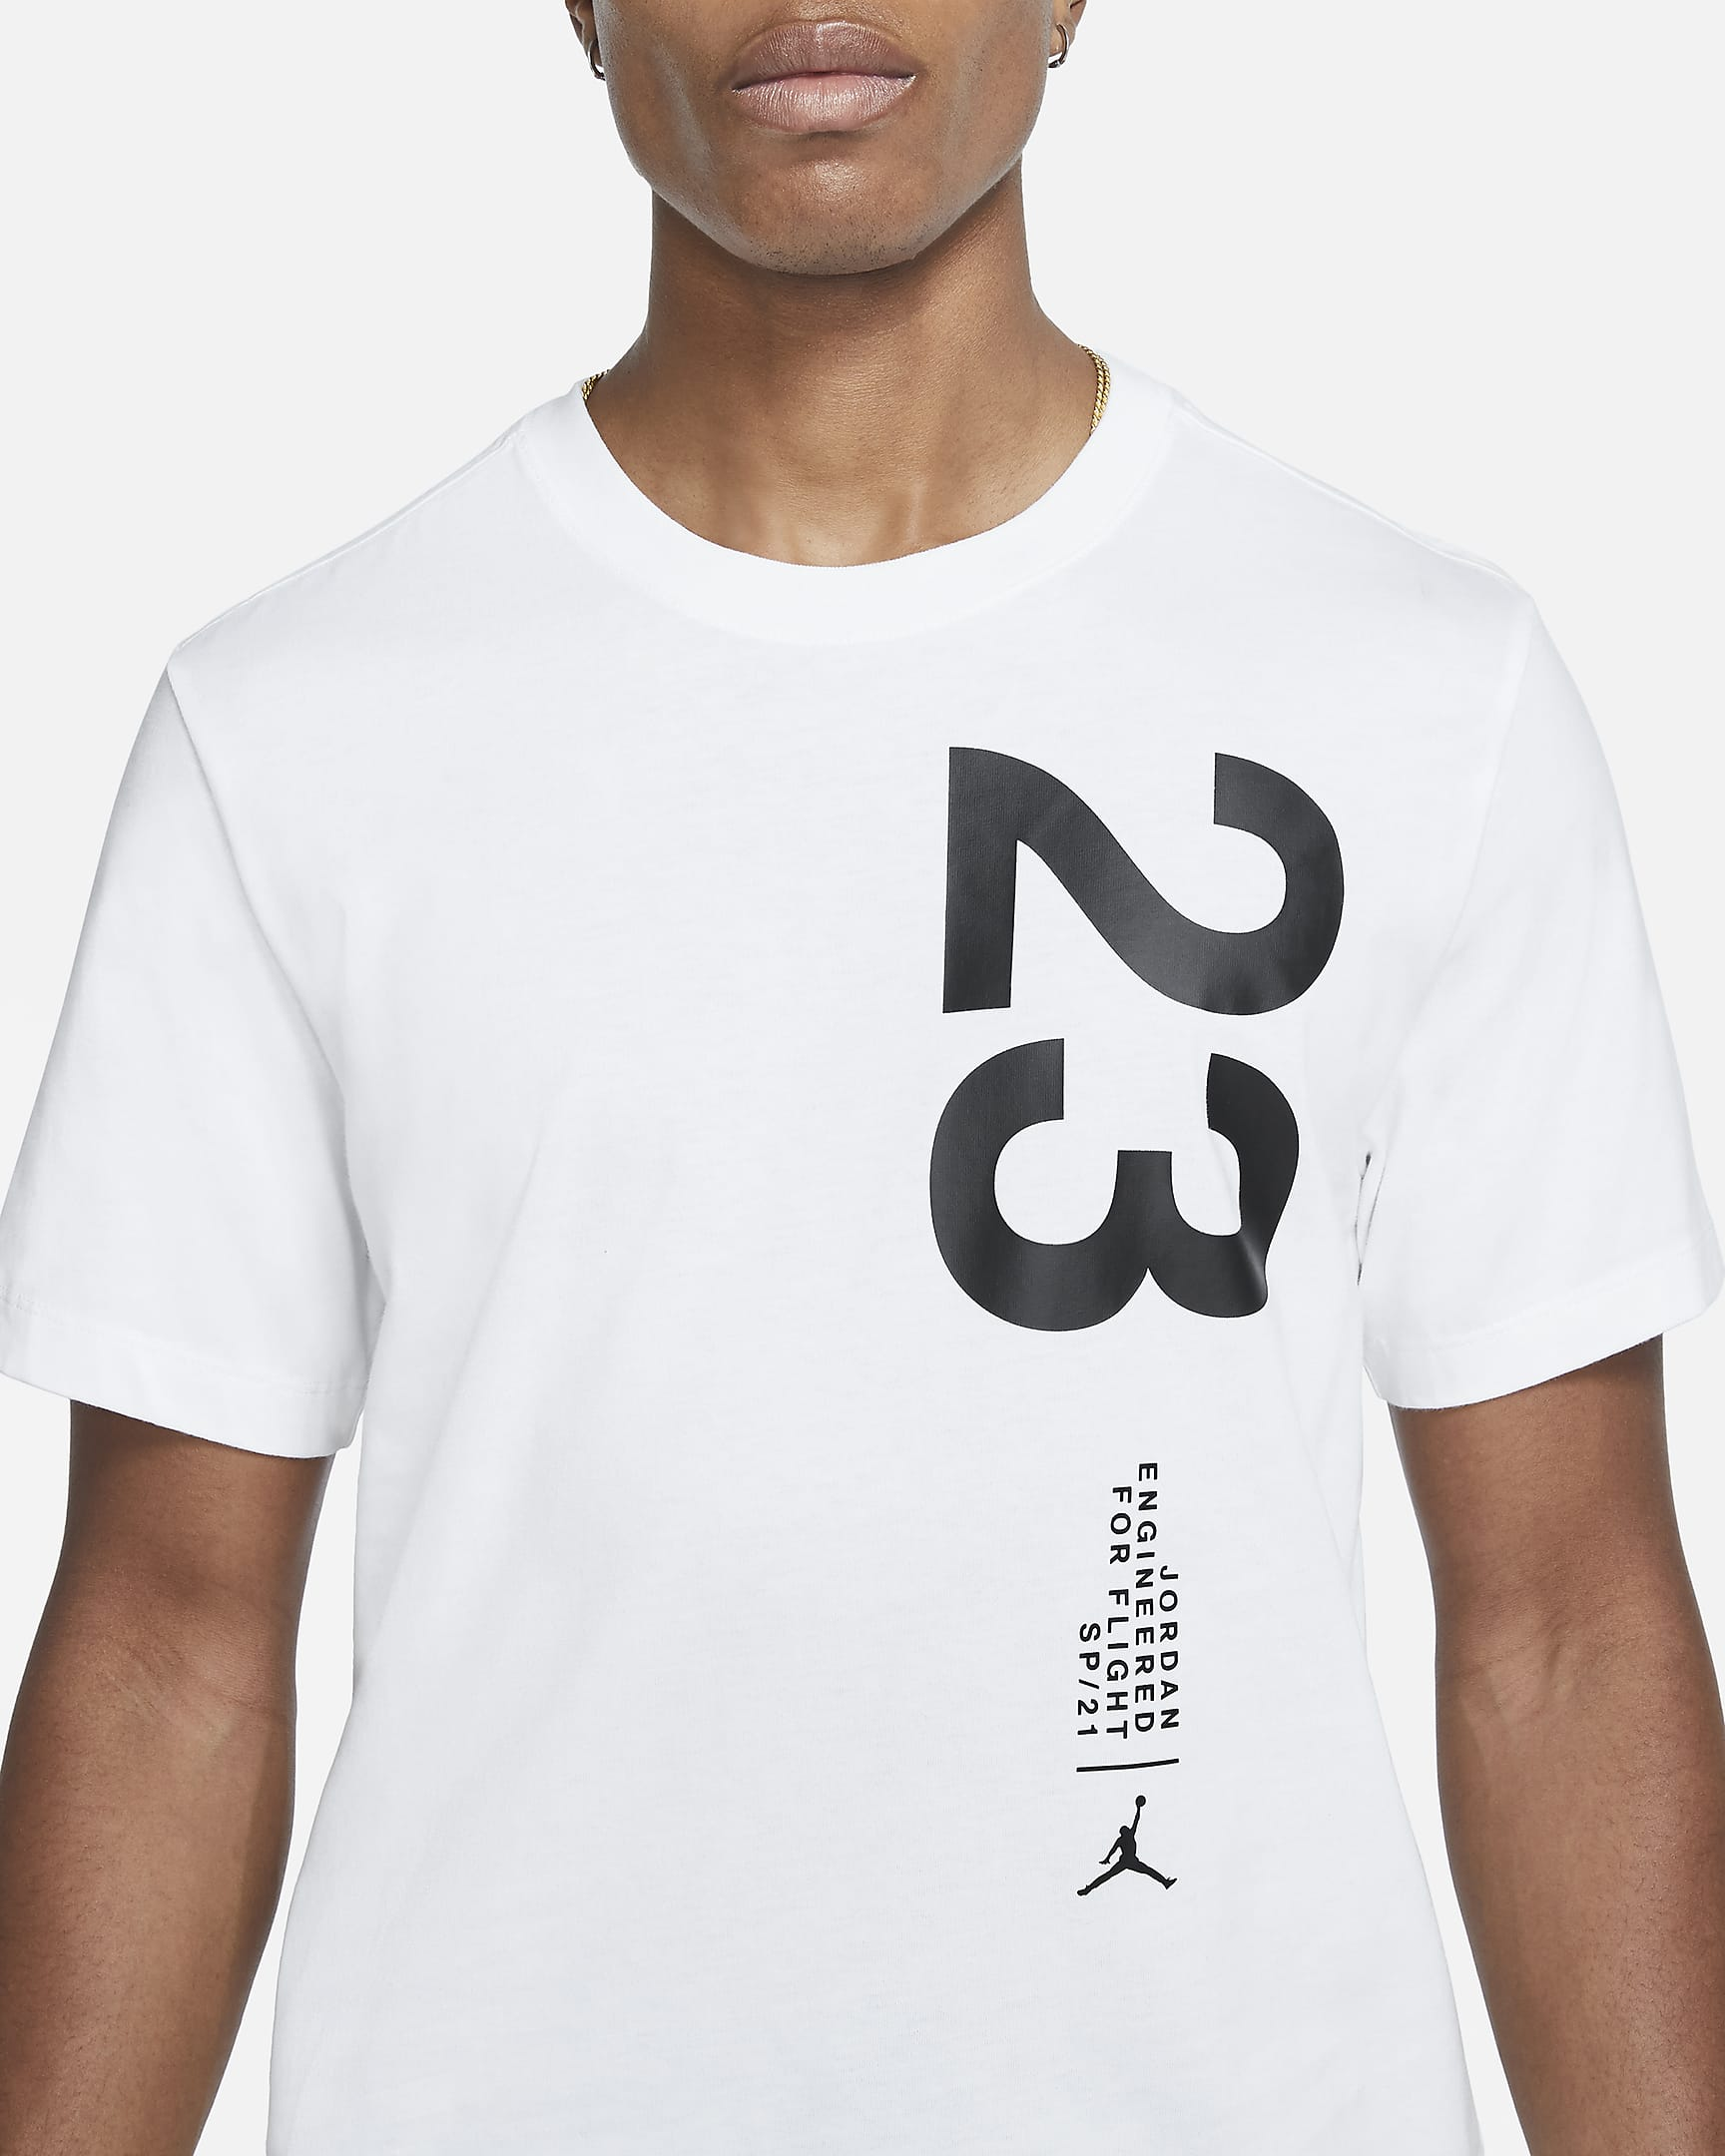 jordan-23-engineered-mens-short-sleeve-t-shirt-nHJnsd-7